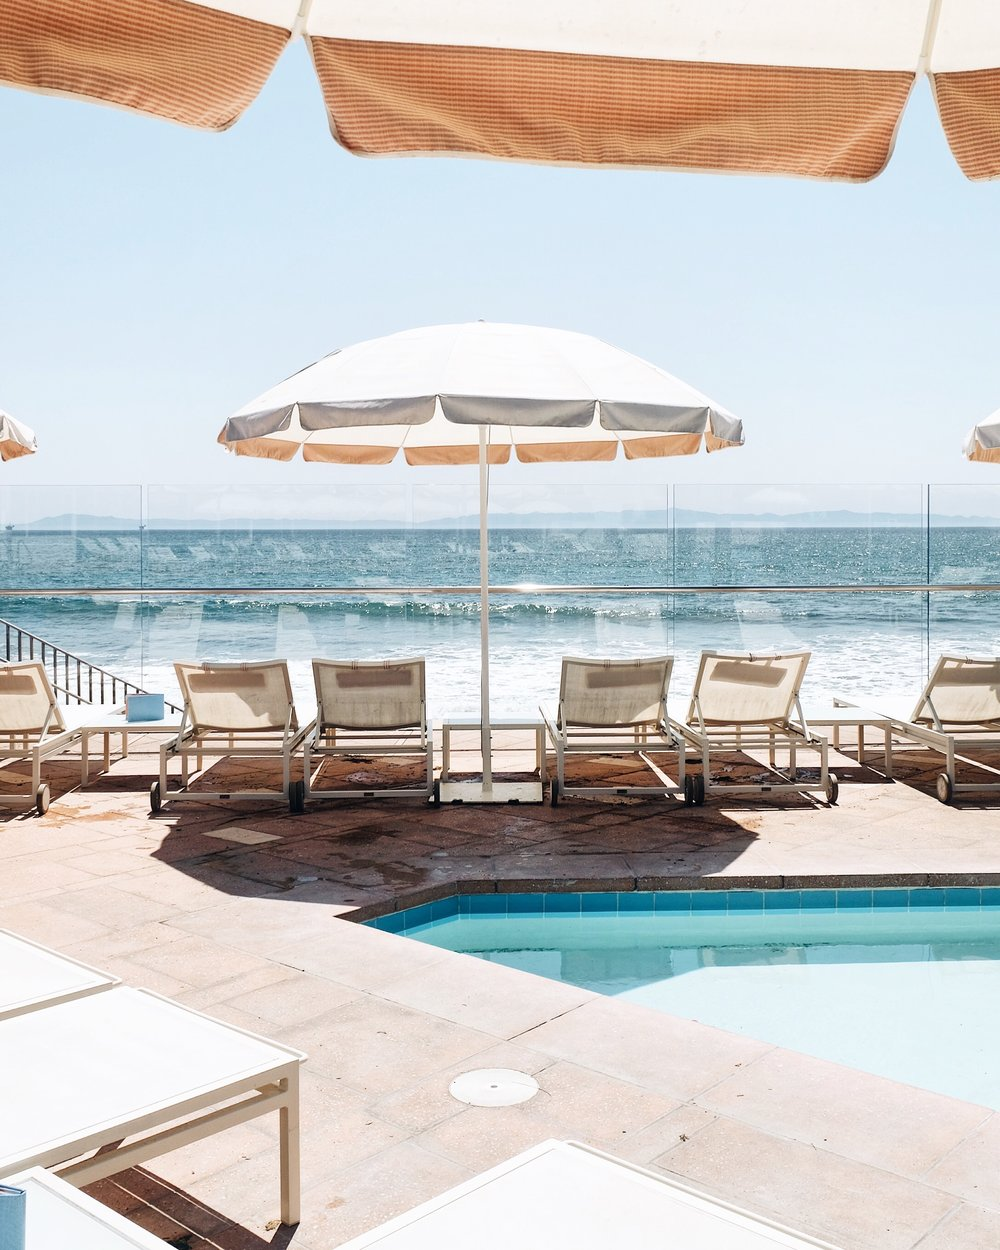 Coral Casino,Traveling with Baby, Travel Guide to Santa Barbara